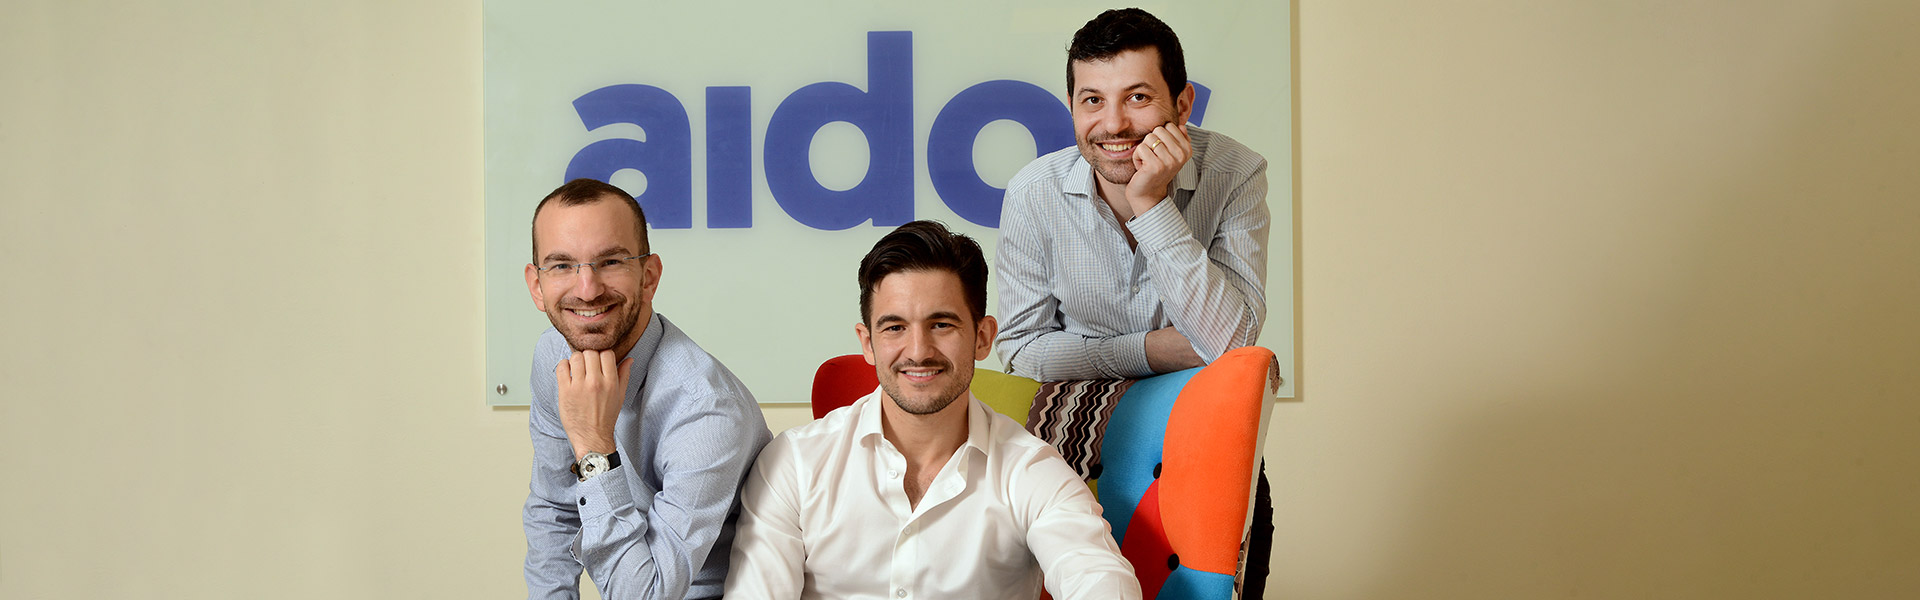 10 Most Promising Start-Ups - AIDOC / צילום: איל יצהר